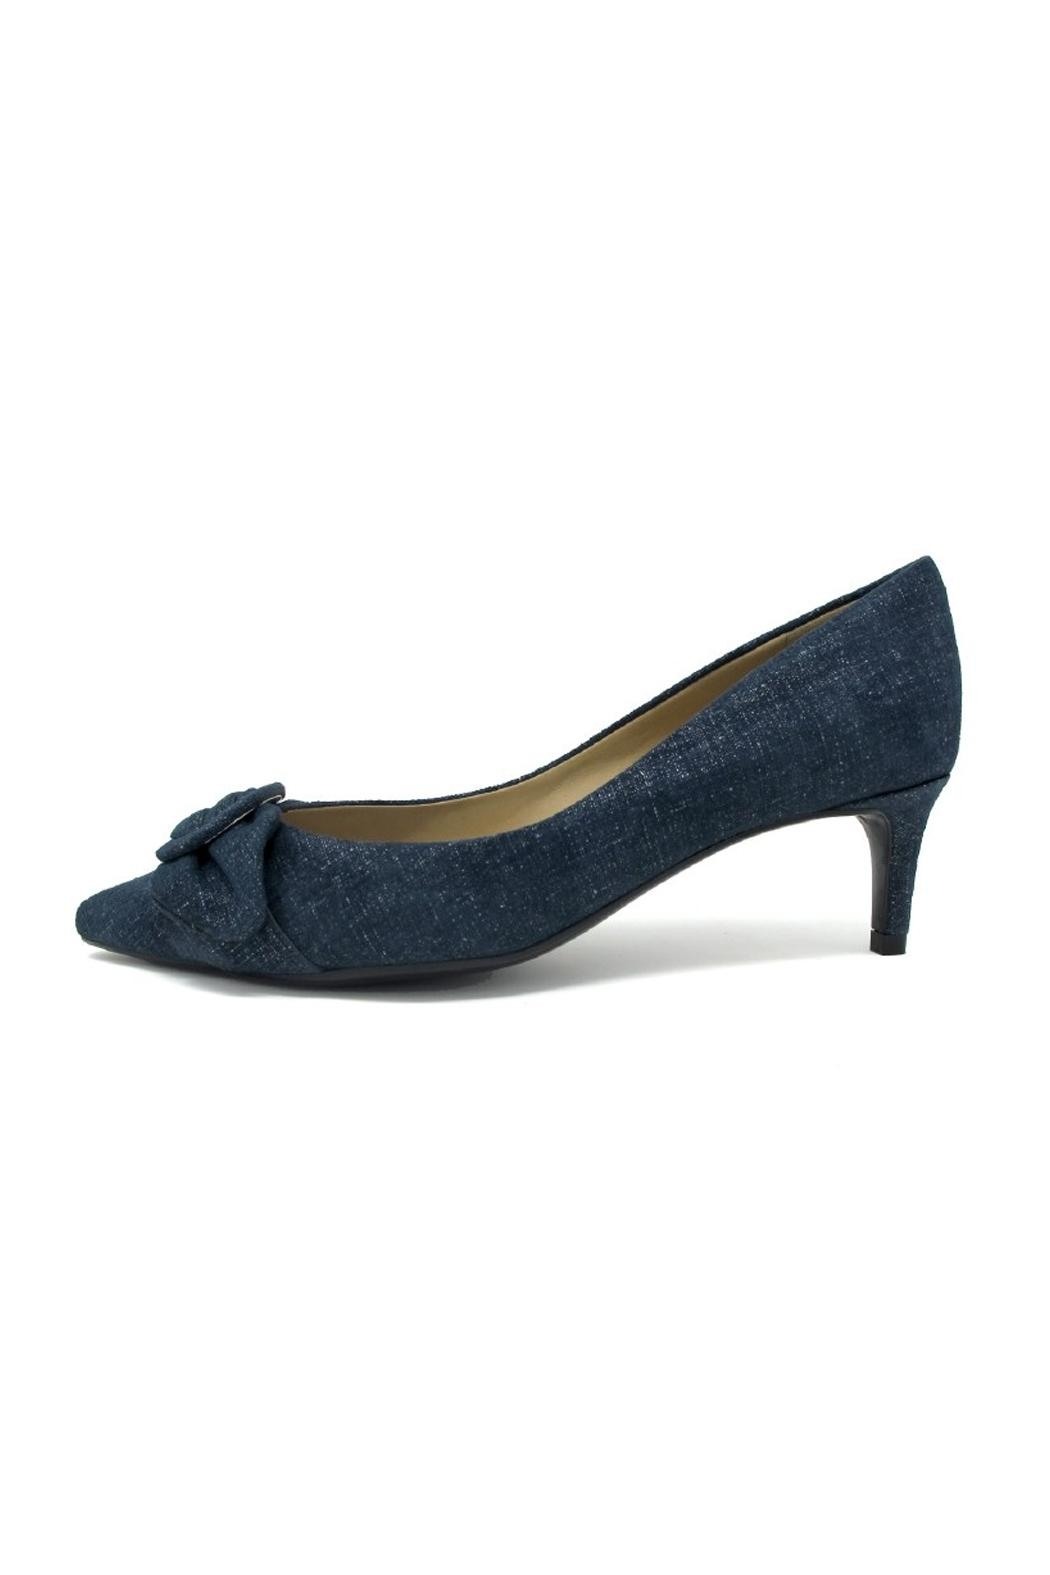 Vaneli Blue Denim Heel - Main Image